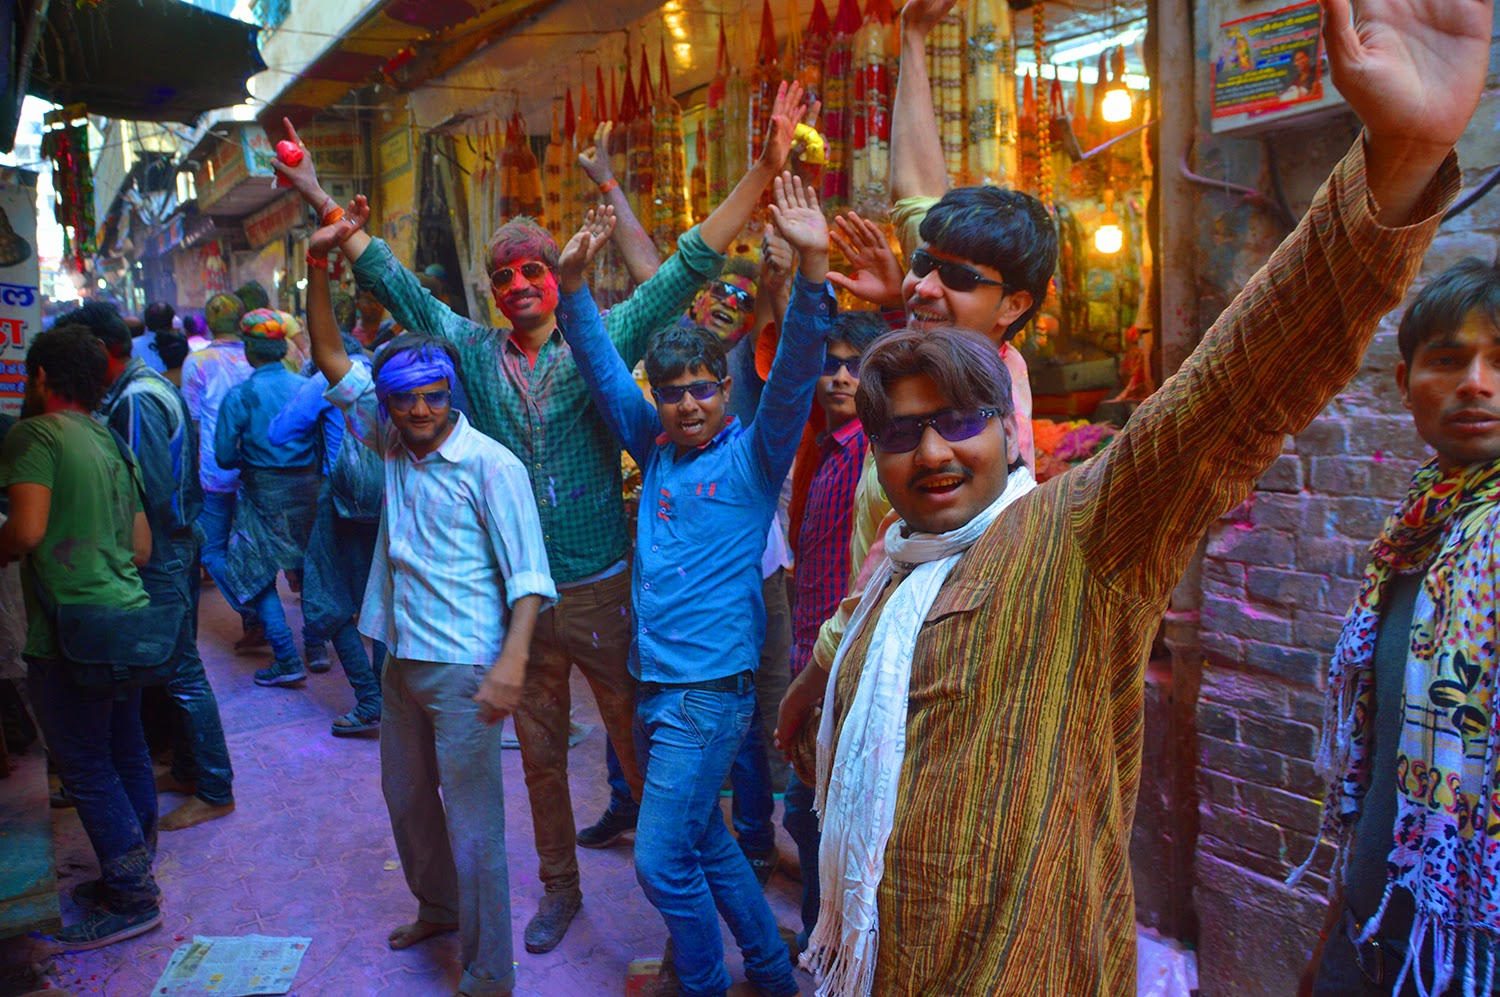 Local Indian men on streets Holi Banke Bihari Temple Vrindavan 2015 colors gulal red yellow green men